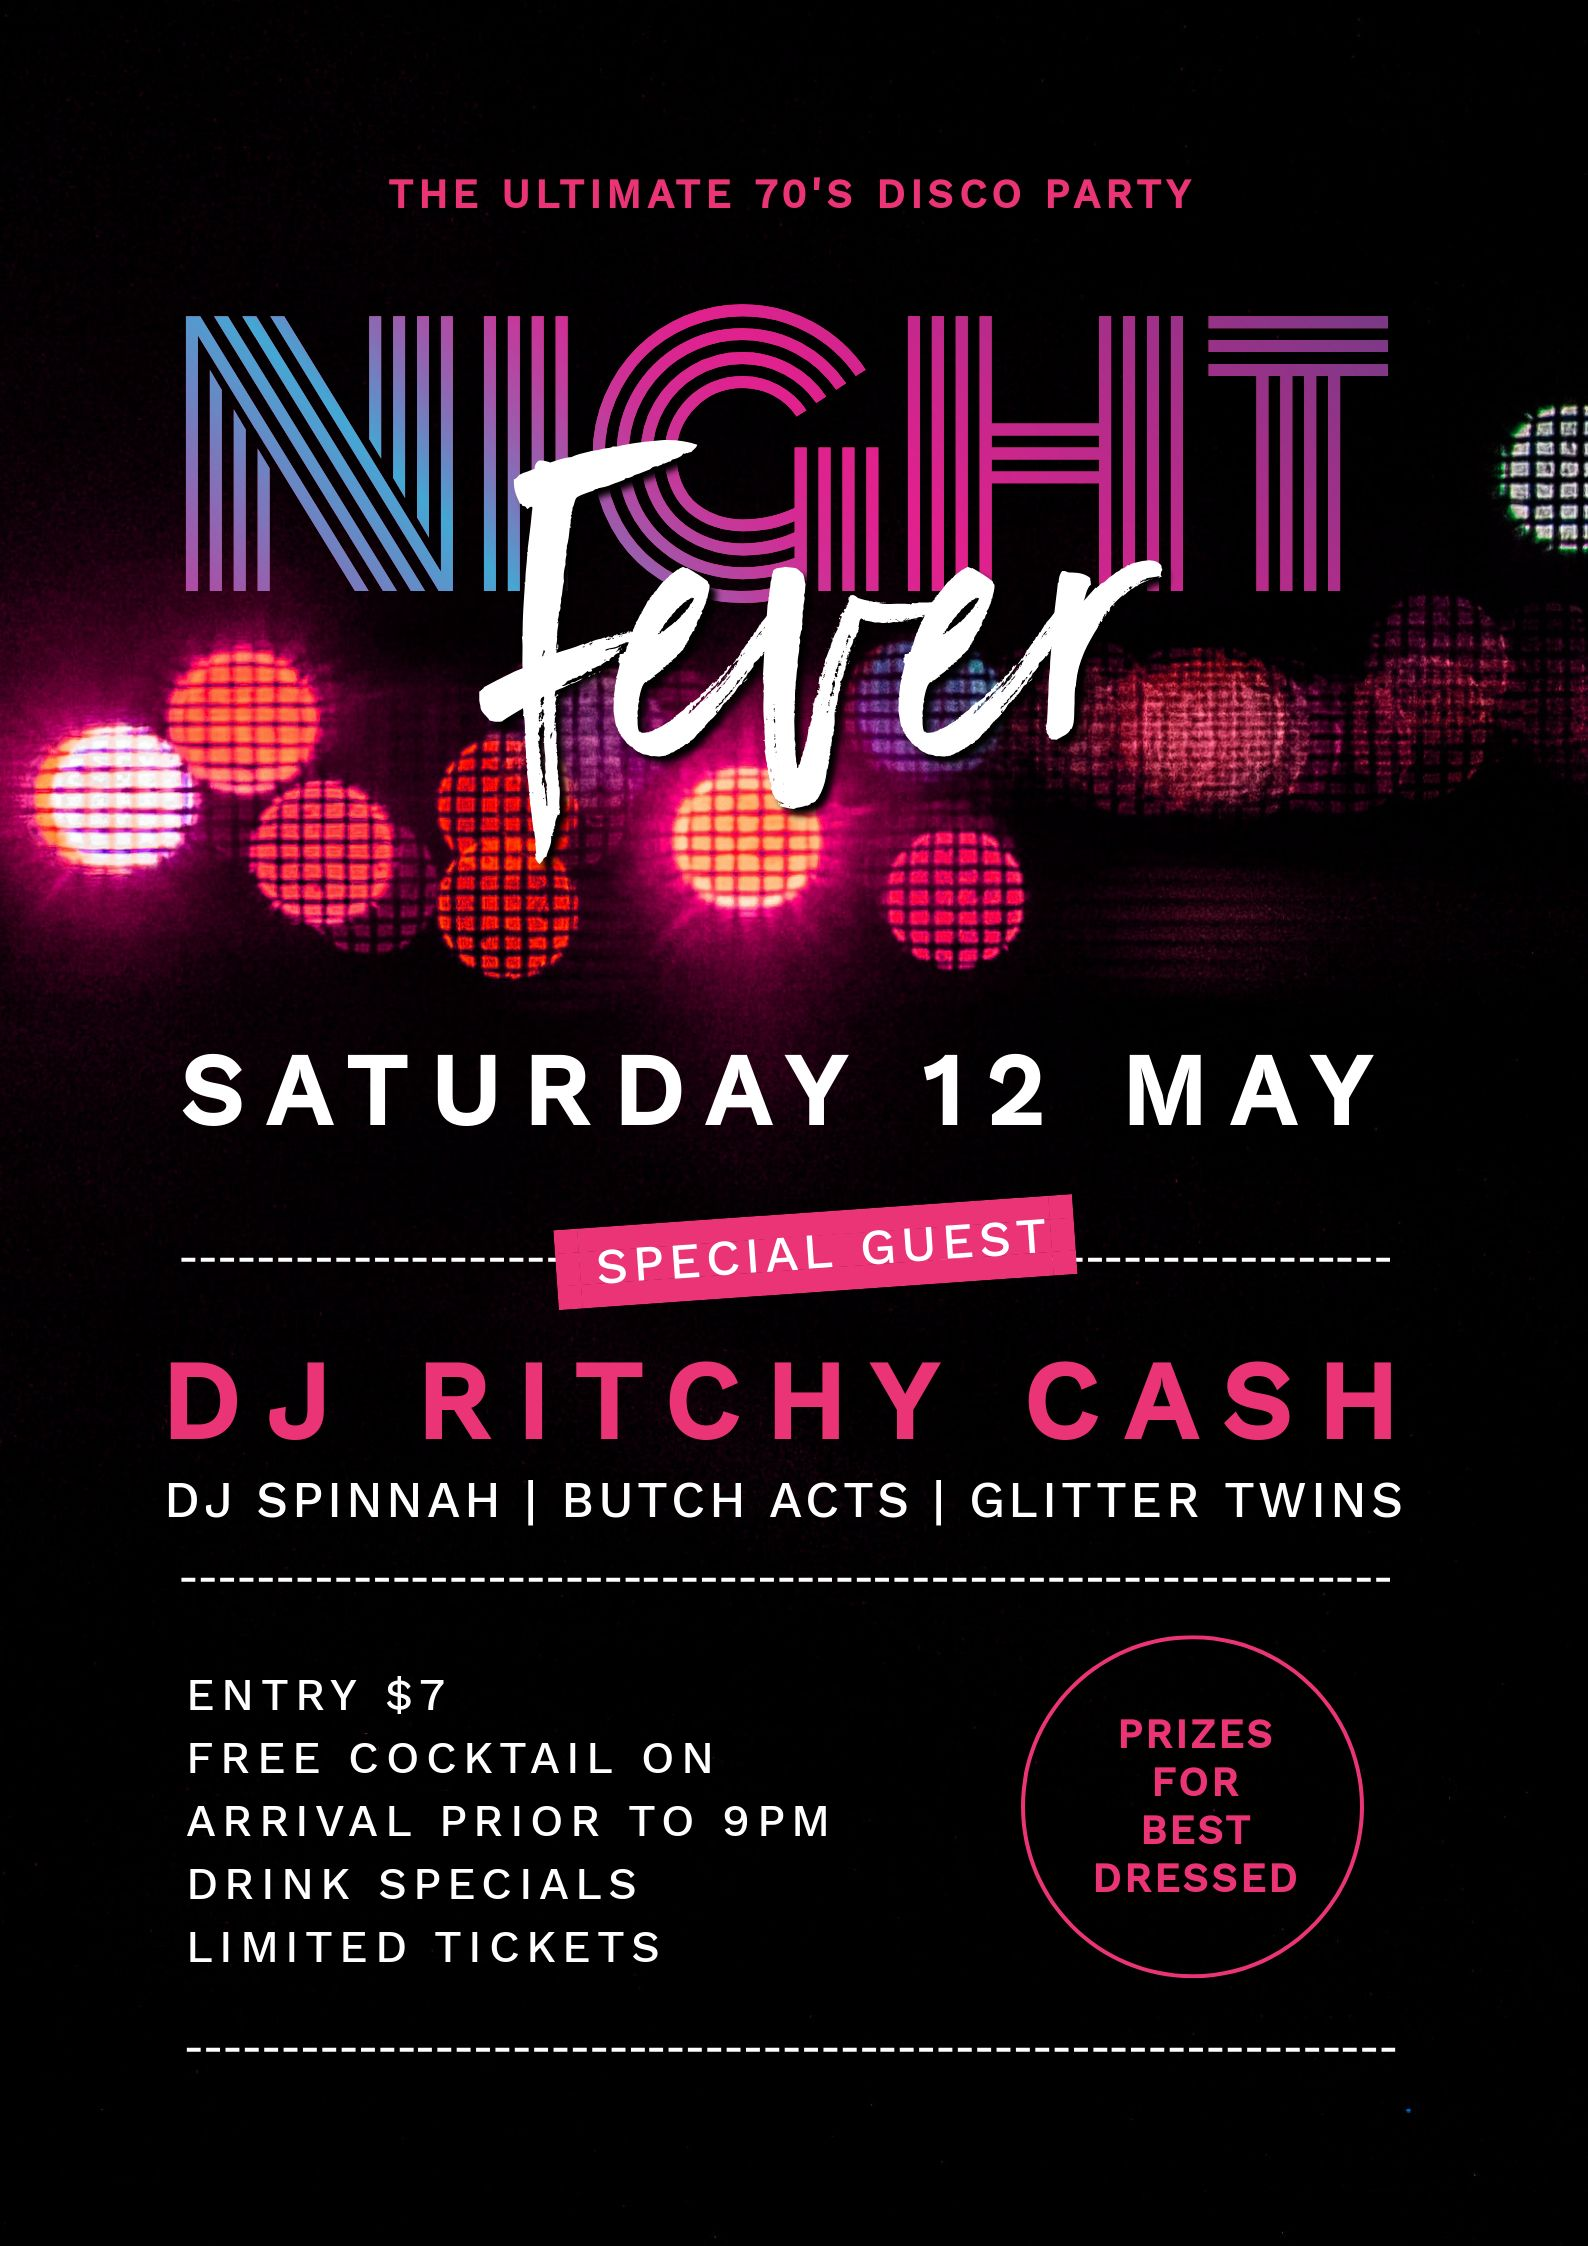 Stunning gradient image in text effect - Night Fever Poster (DJ Event Poster) using Text Masking - 7 Beautiful Text Masks - How to WOW with Images in Text